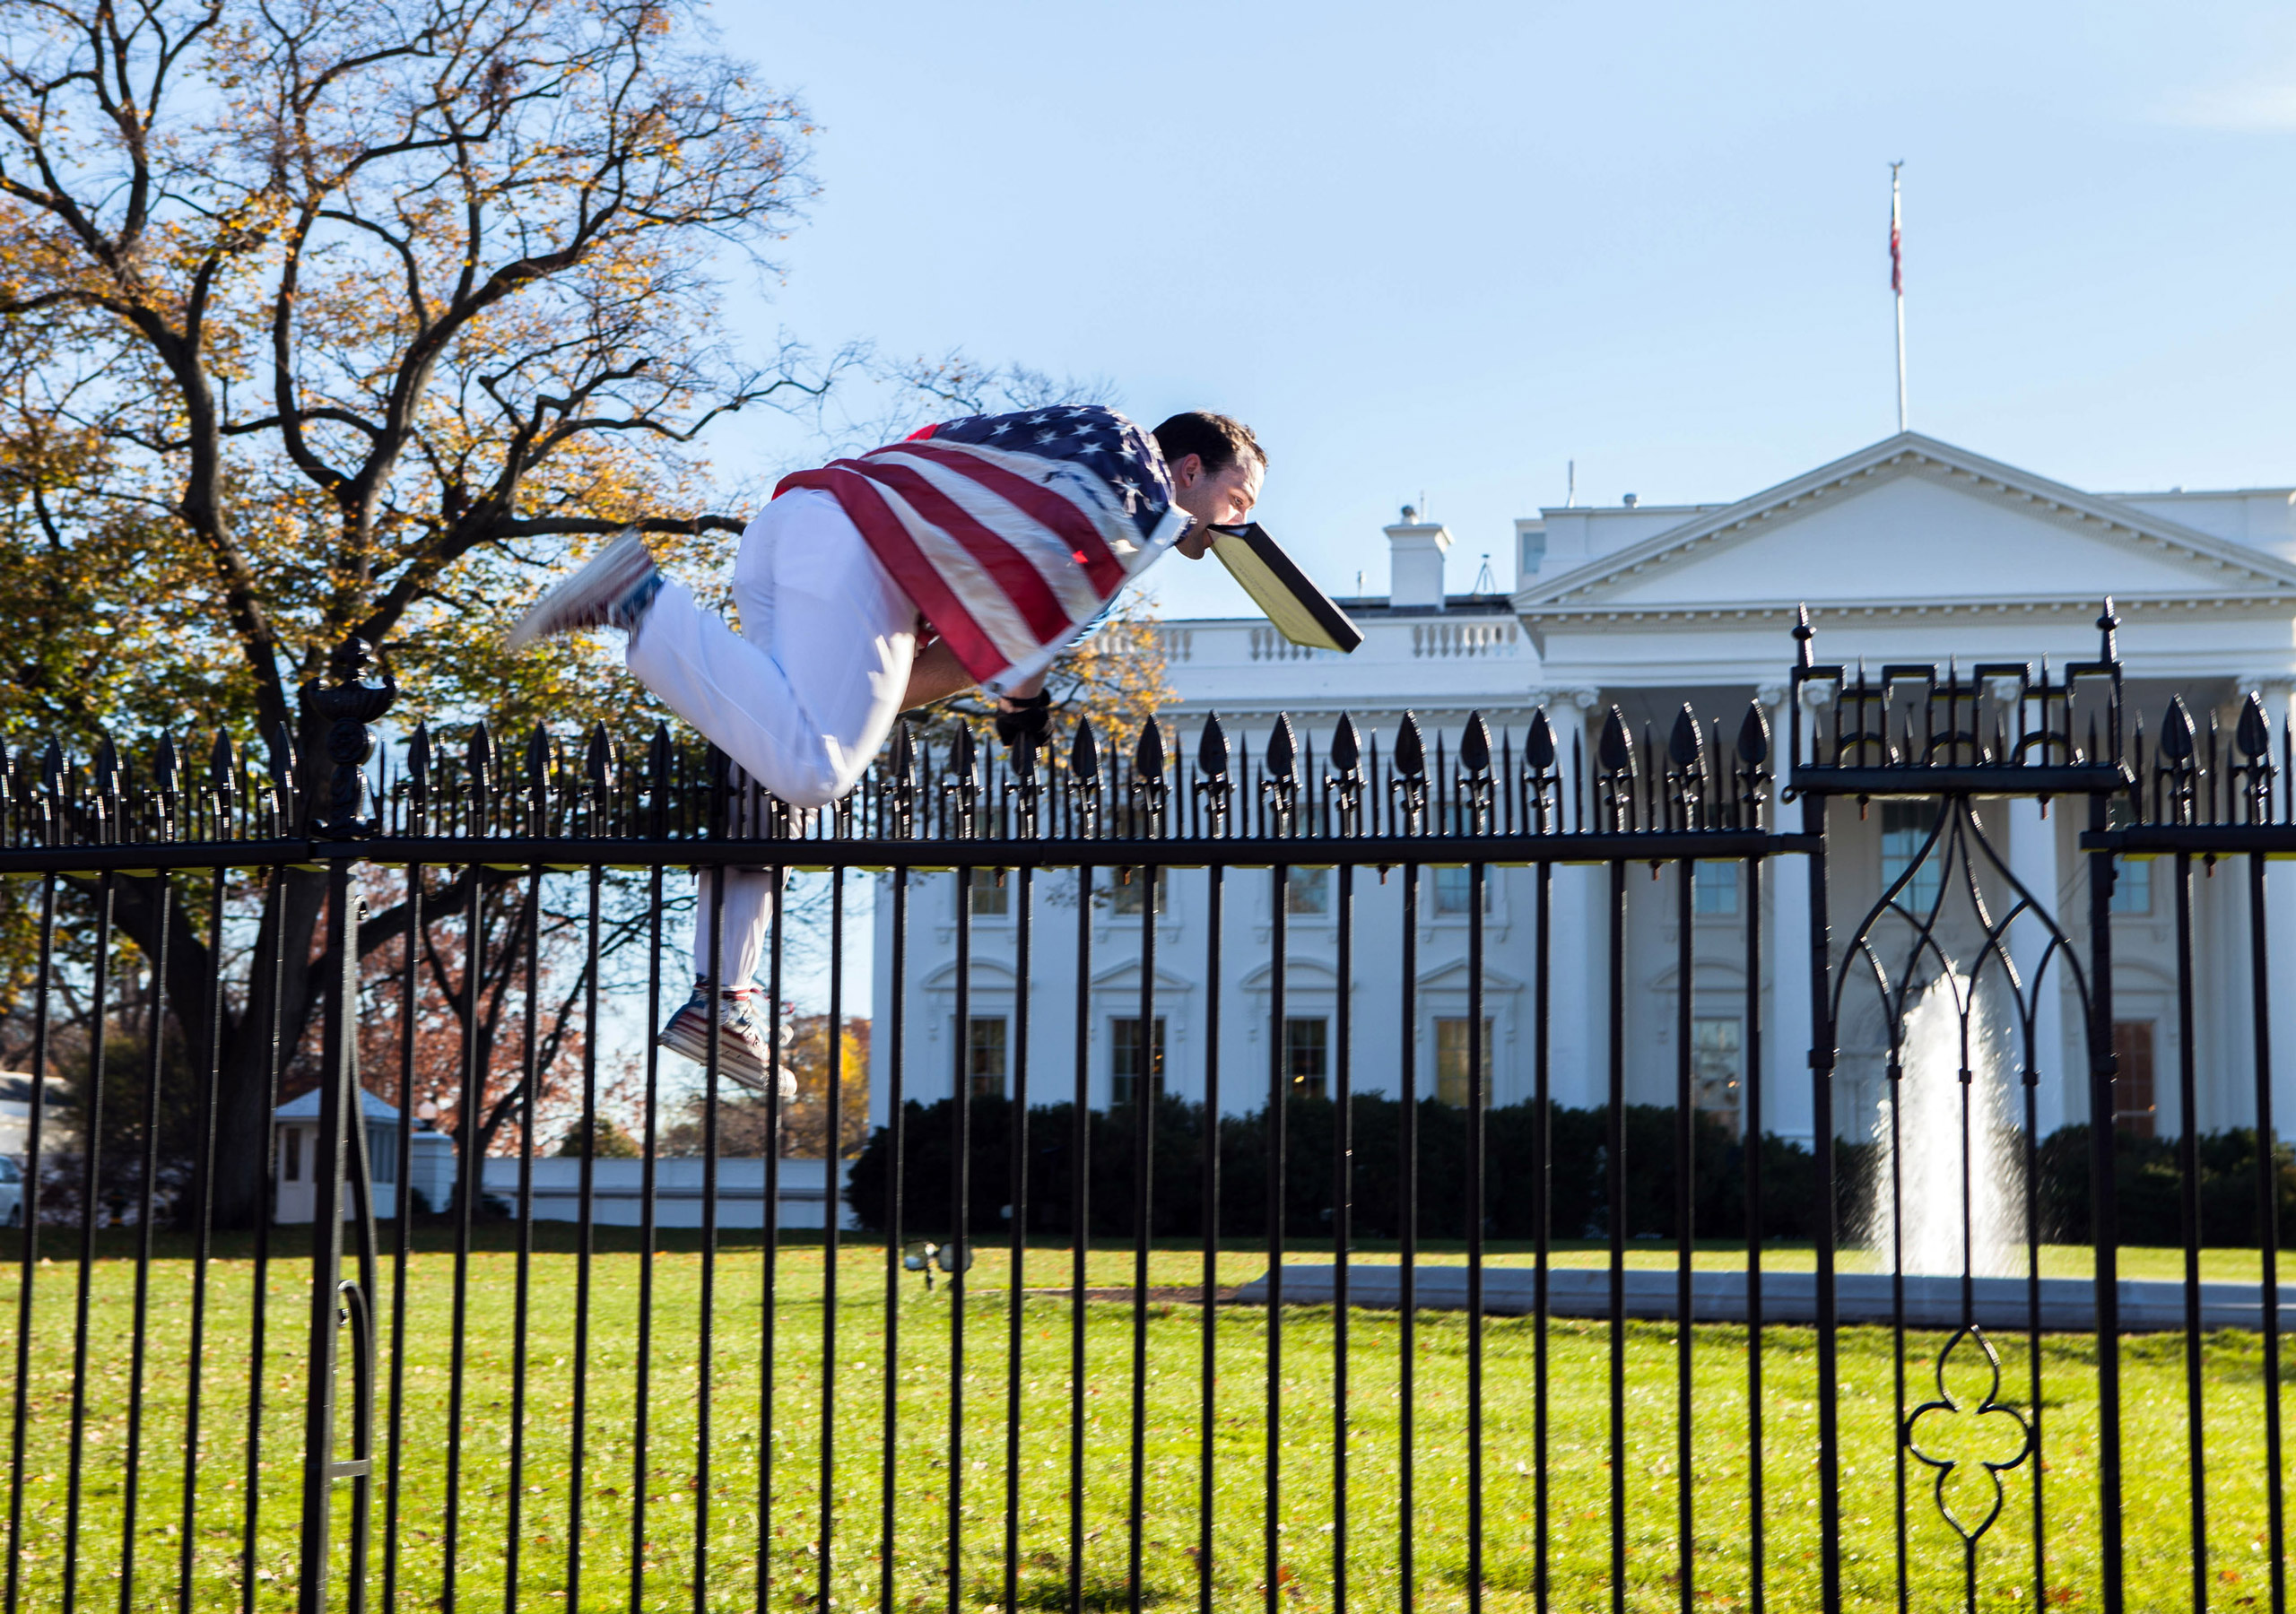 A man jumps a fence at the White House in Washington on Nov. 26, 2015.